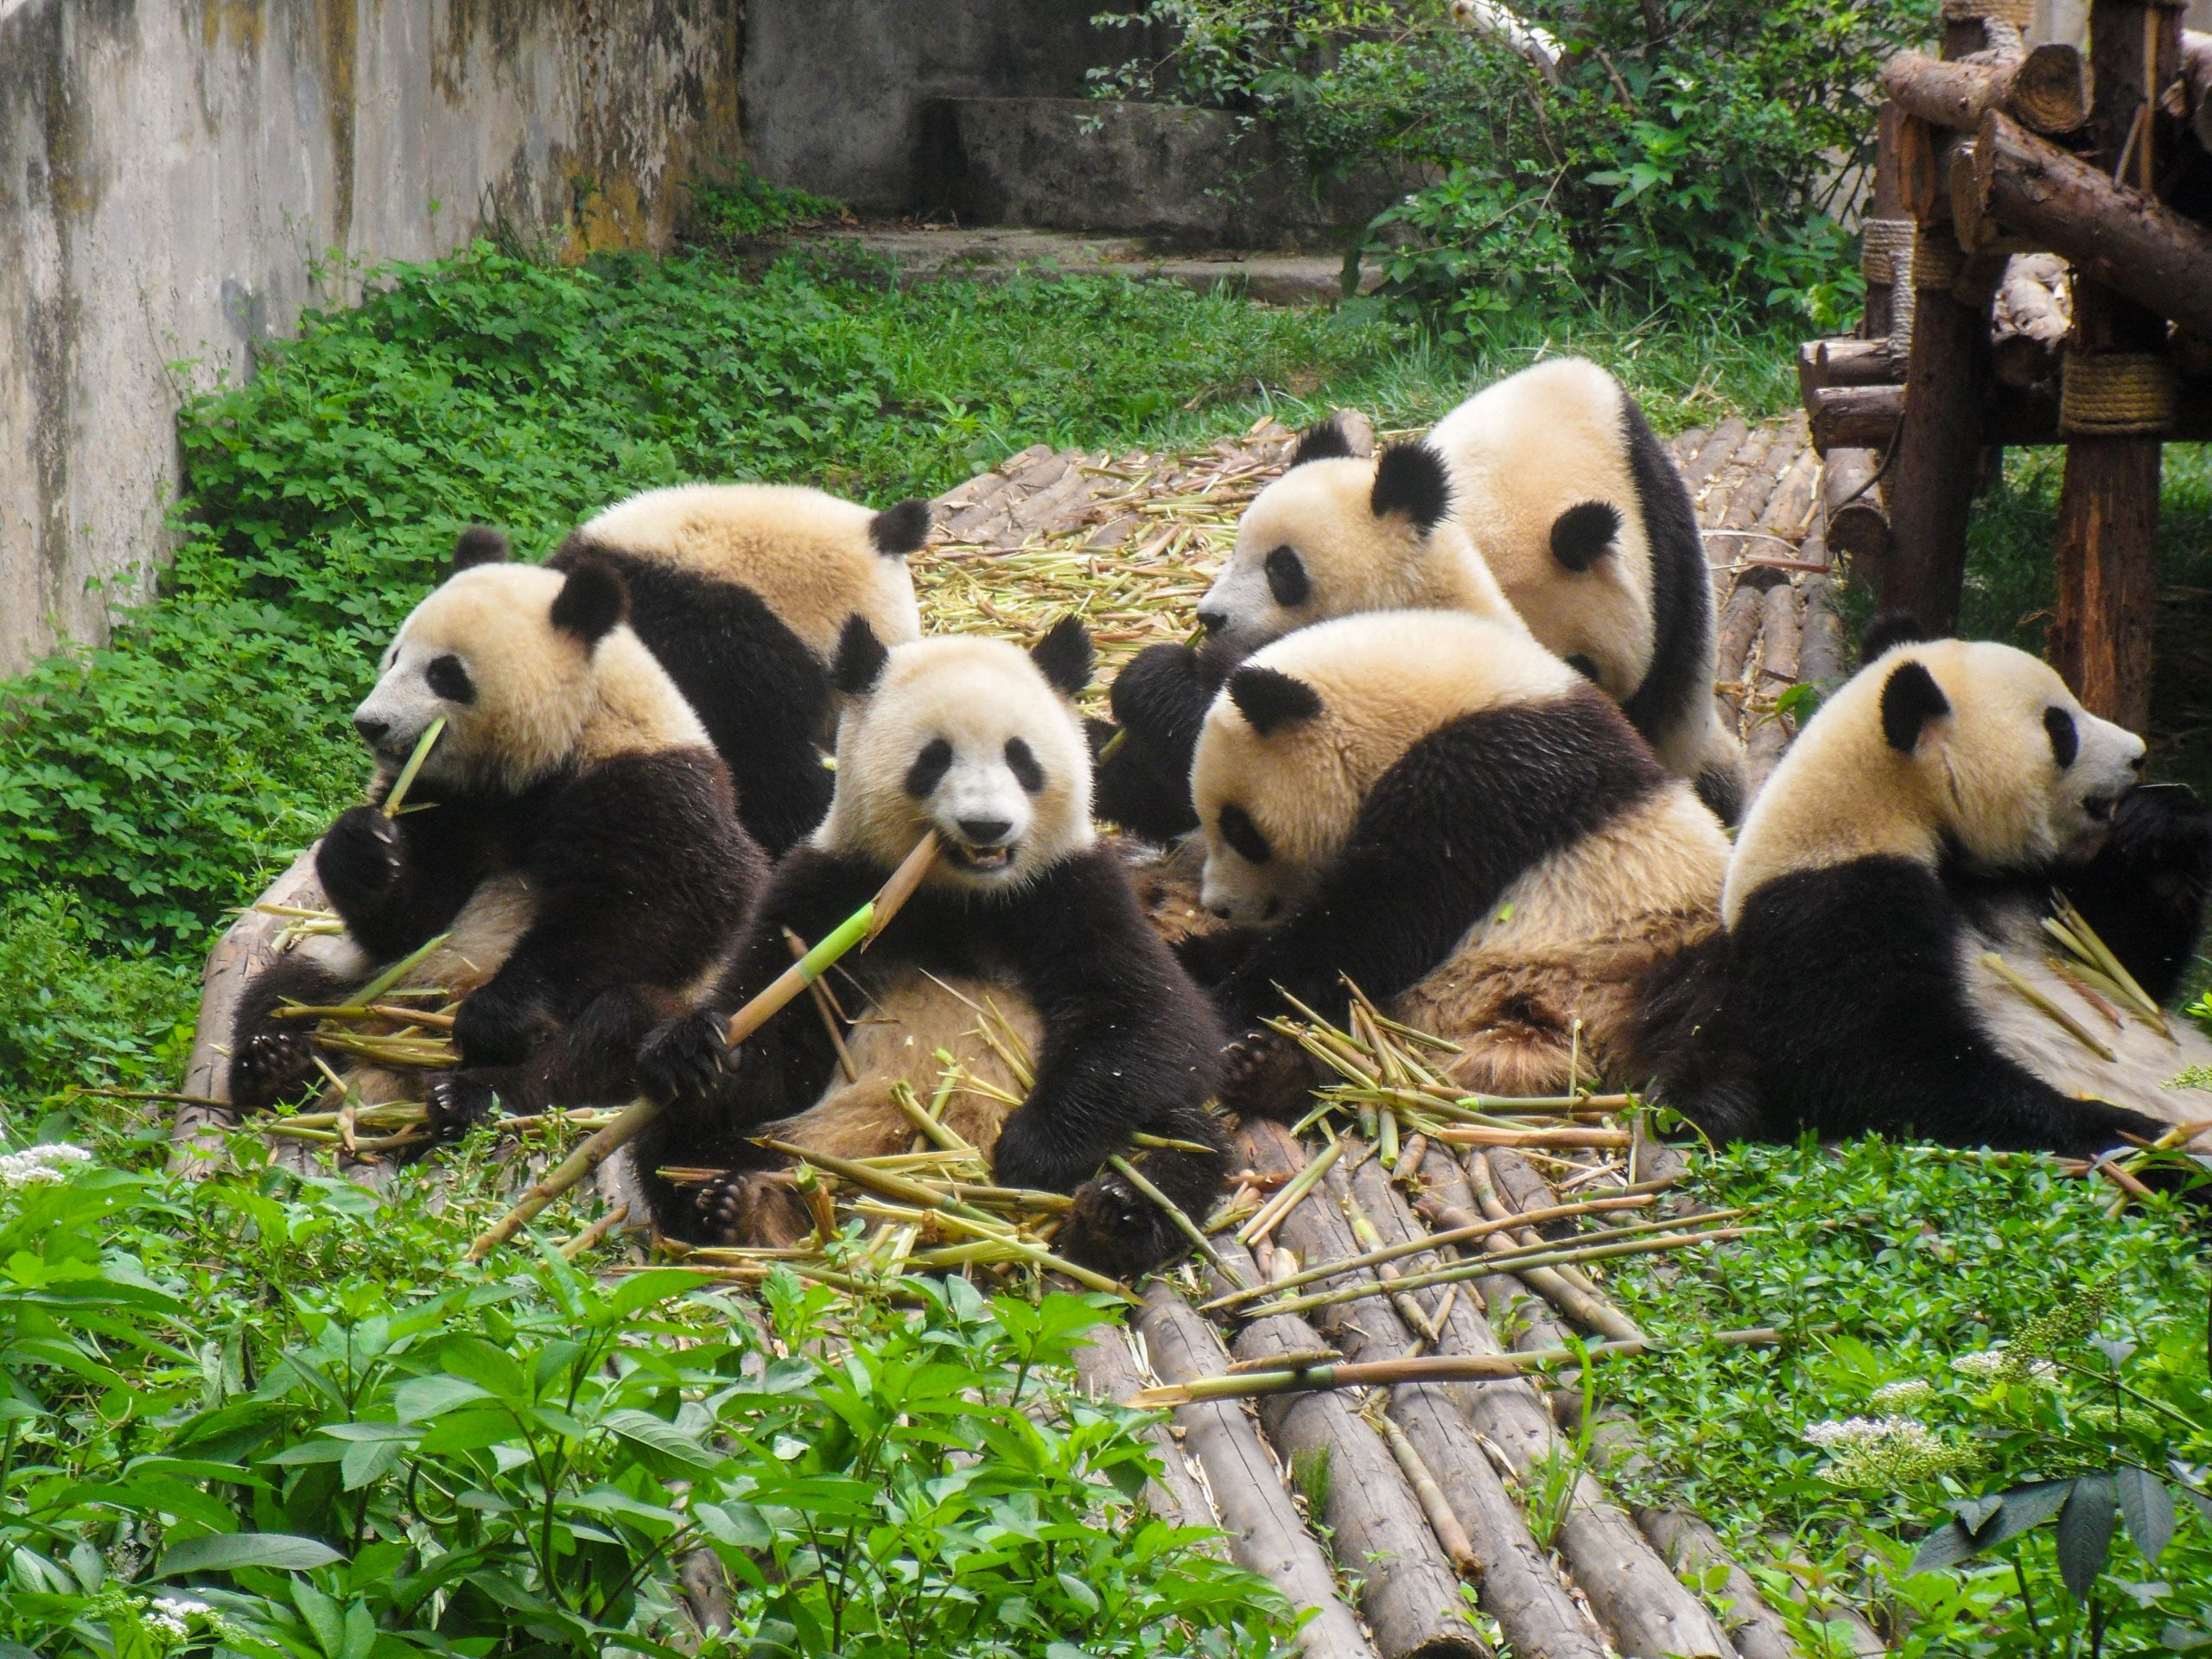 Chengdu pandas in Southwest China. ChinaTEFLer